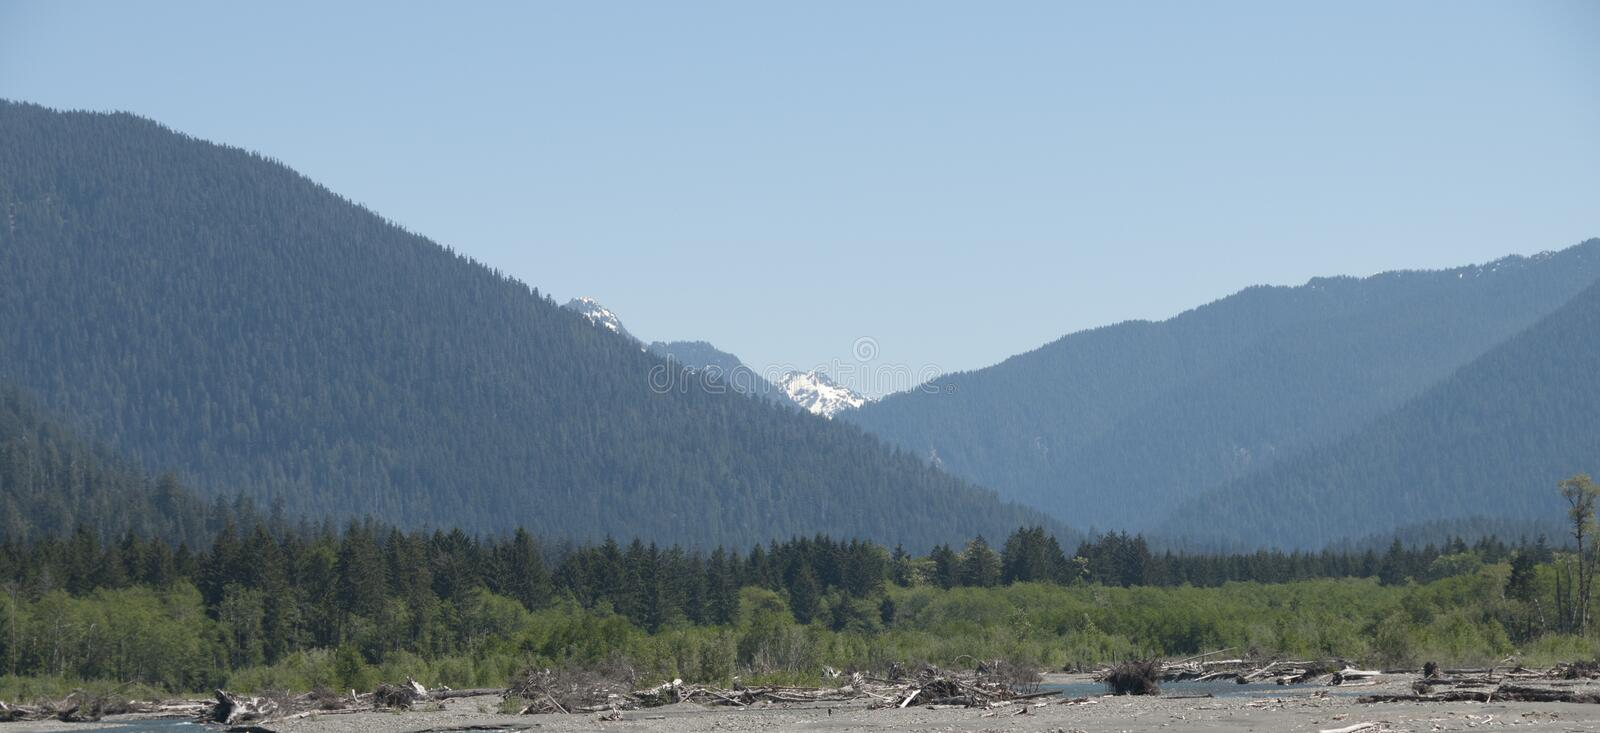 View of Mount Olympus. Mountain view of Mt. Olympus, Olympic Peninsula, Washington State, United States. Driftwood on Rialto Beach in foreground royalty free stock images